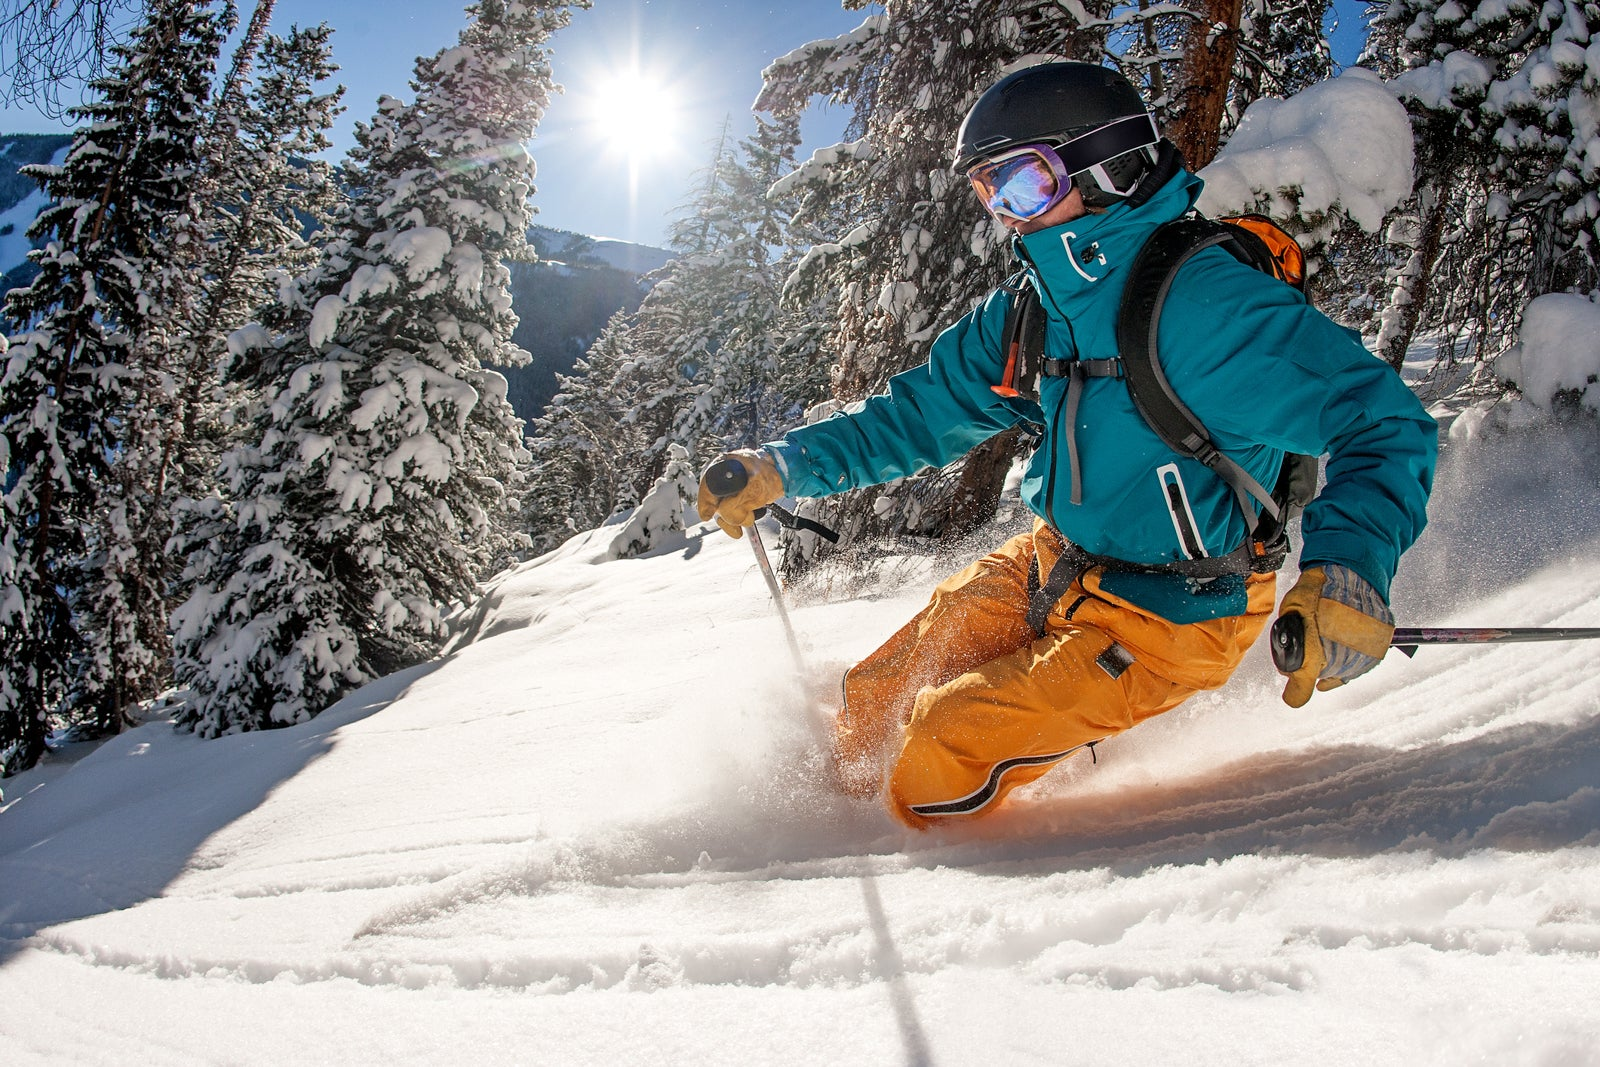 Wolf Creek first US ski resort to open for 2021-22 season